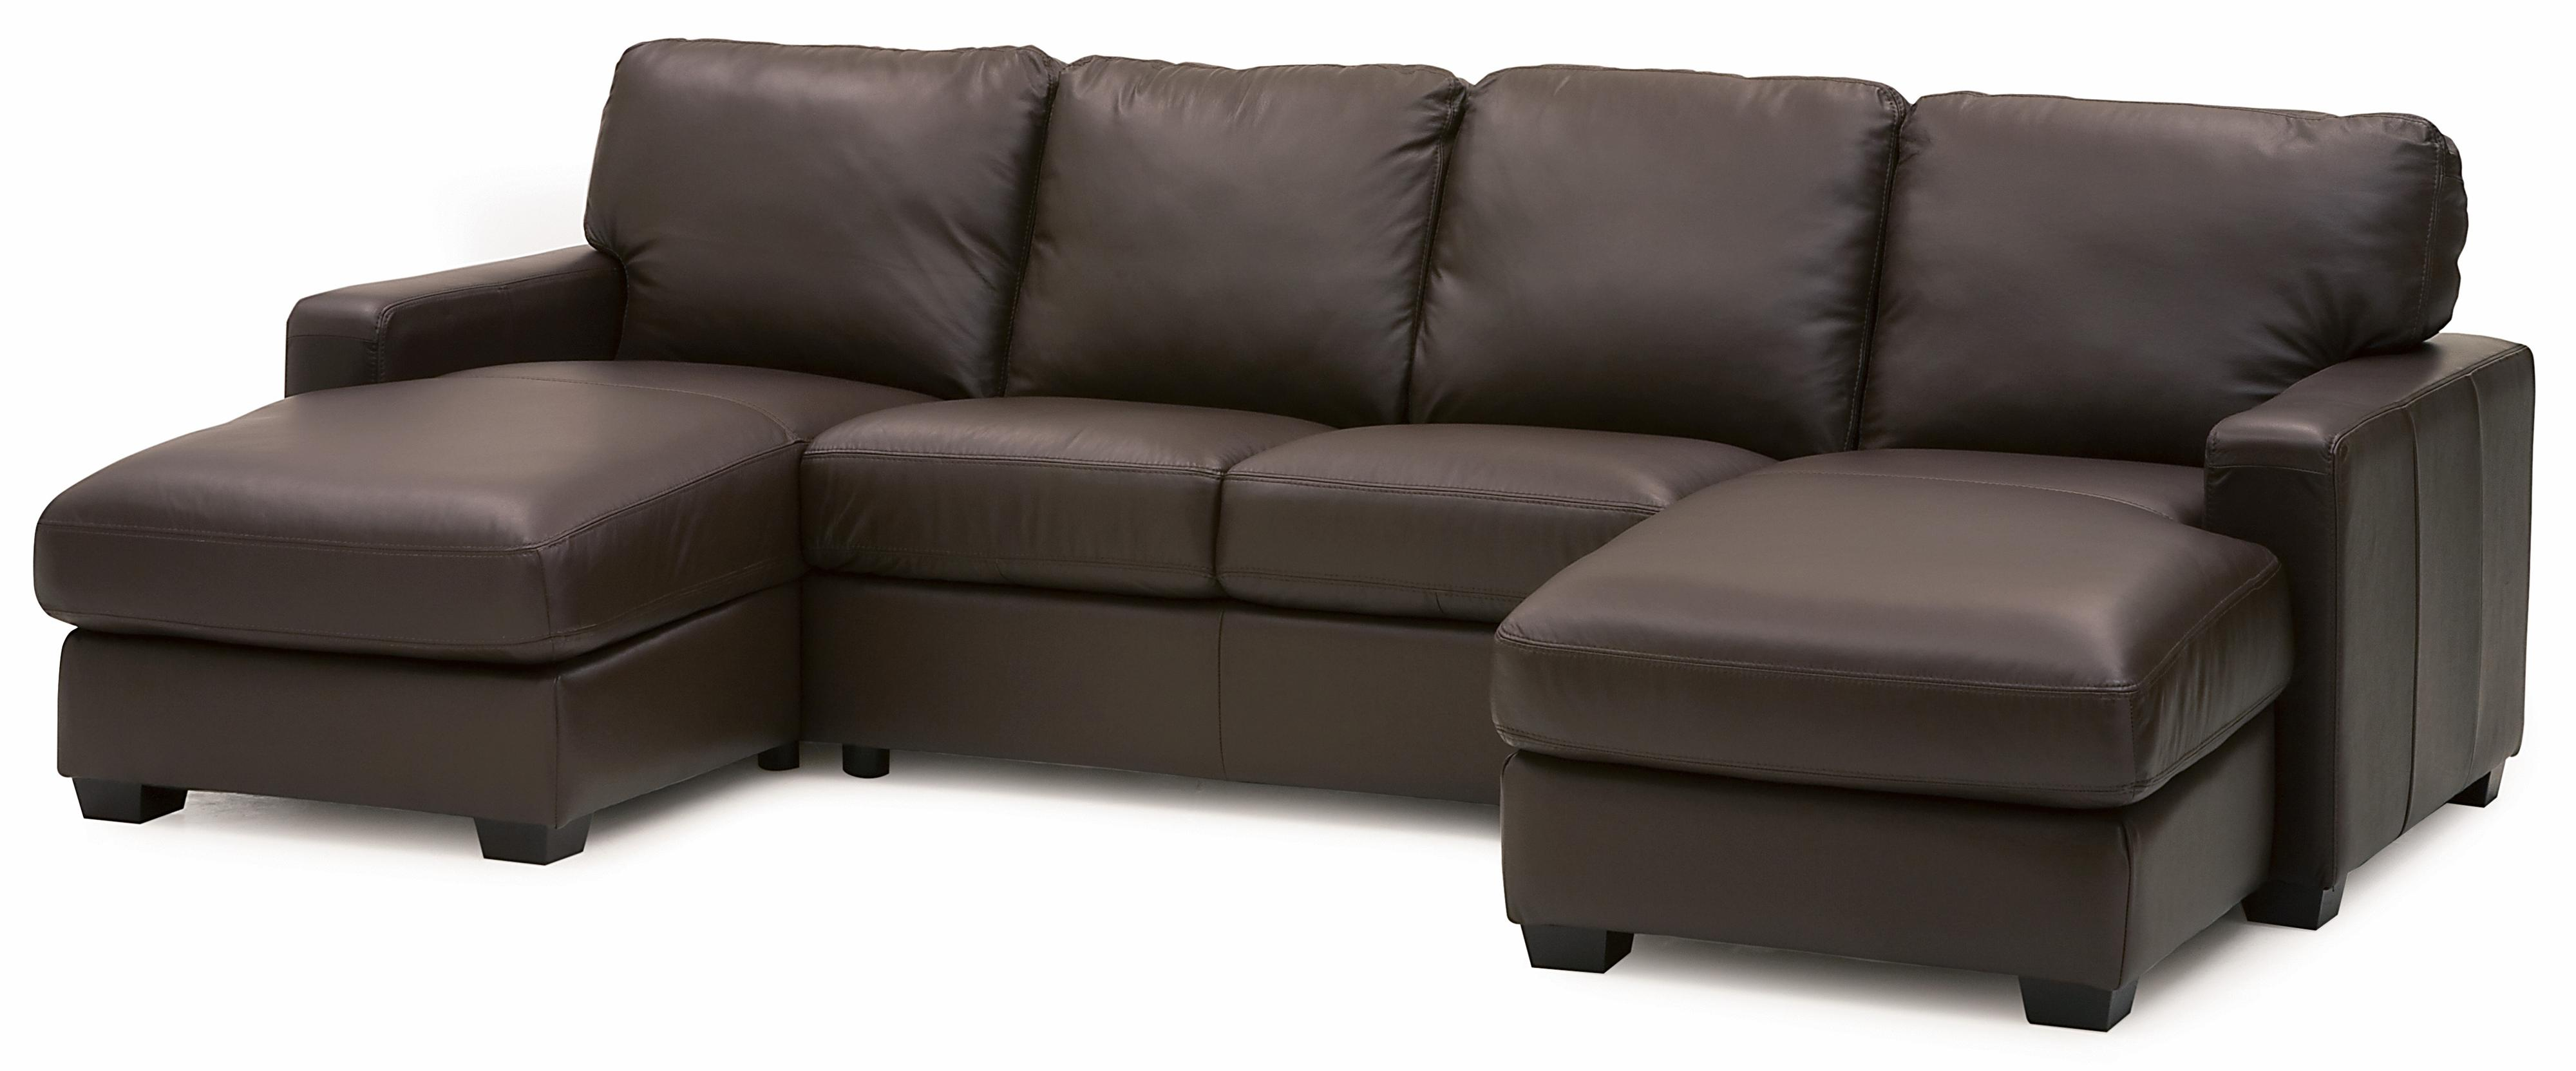 Palliser westend contemporary 3 pc sectional with rhf and for 3pc sectional with chaise